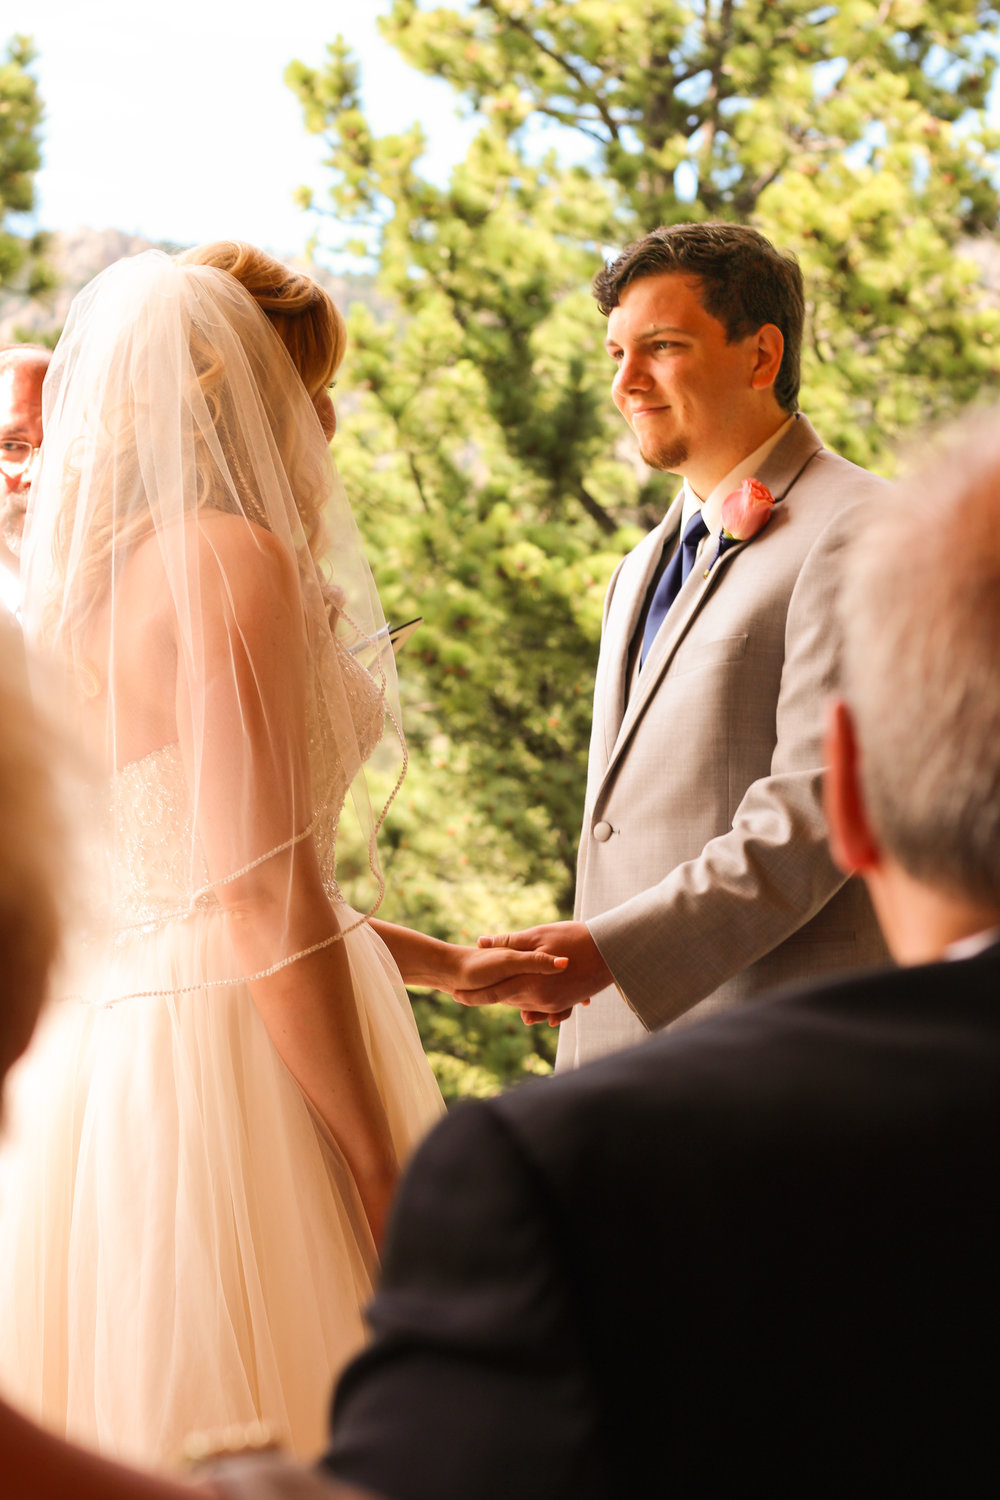 alexandra-rice-photography-estes-park-wedding-santa-cruz-bride-groom-ceremony.jpg